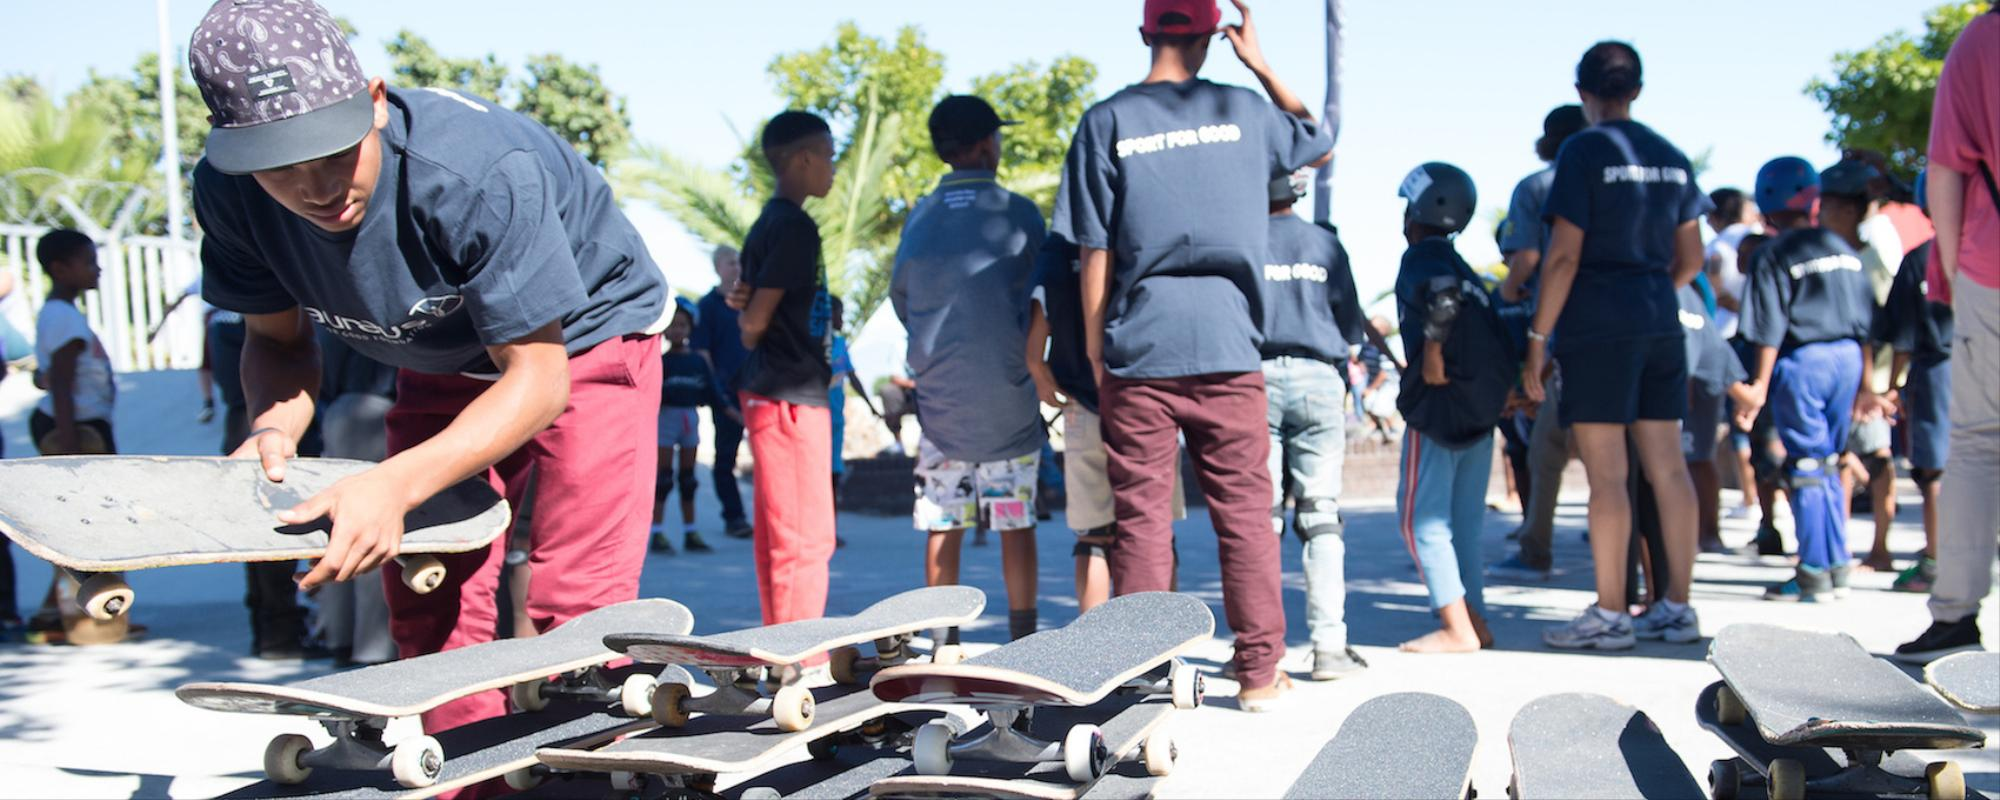 Welcome to the Skate Park in the Middle of a South African Township